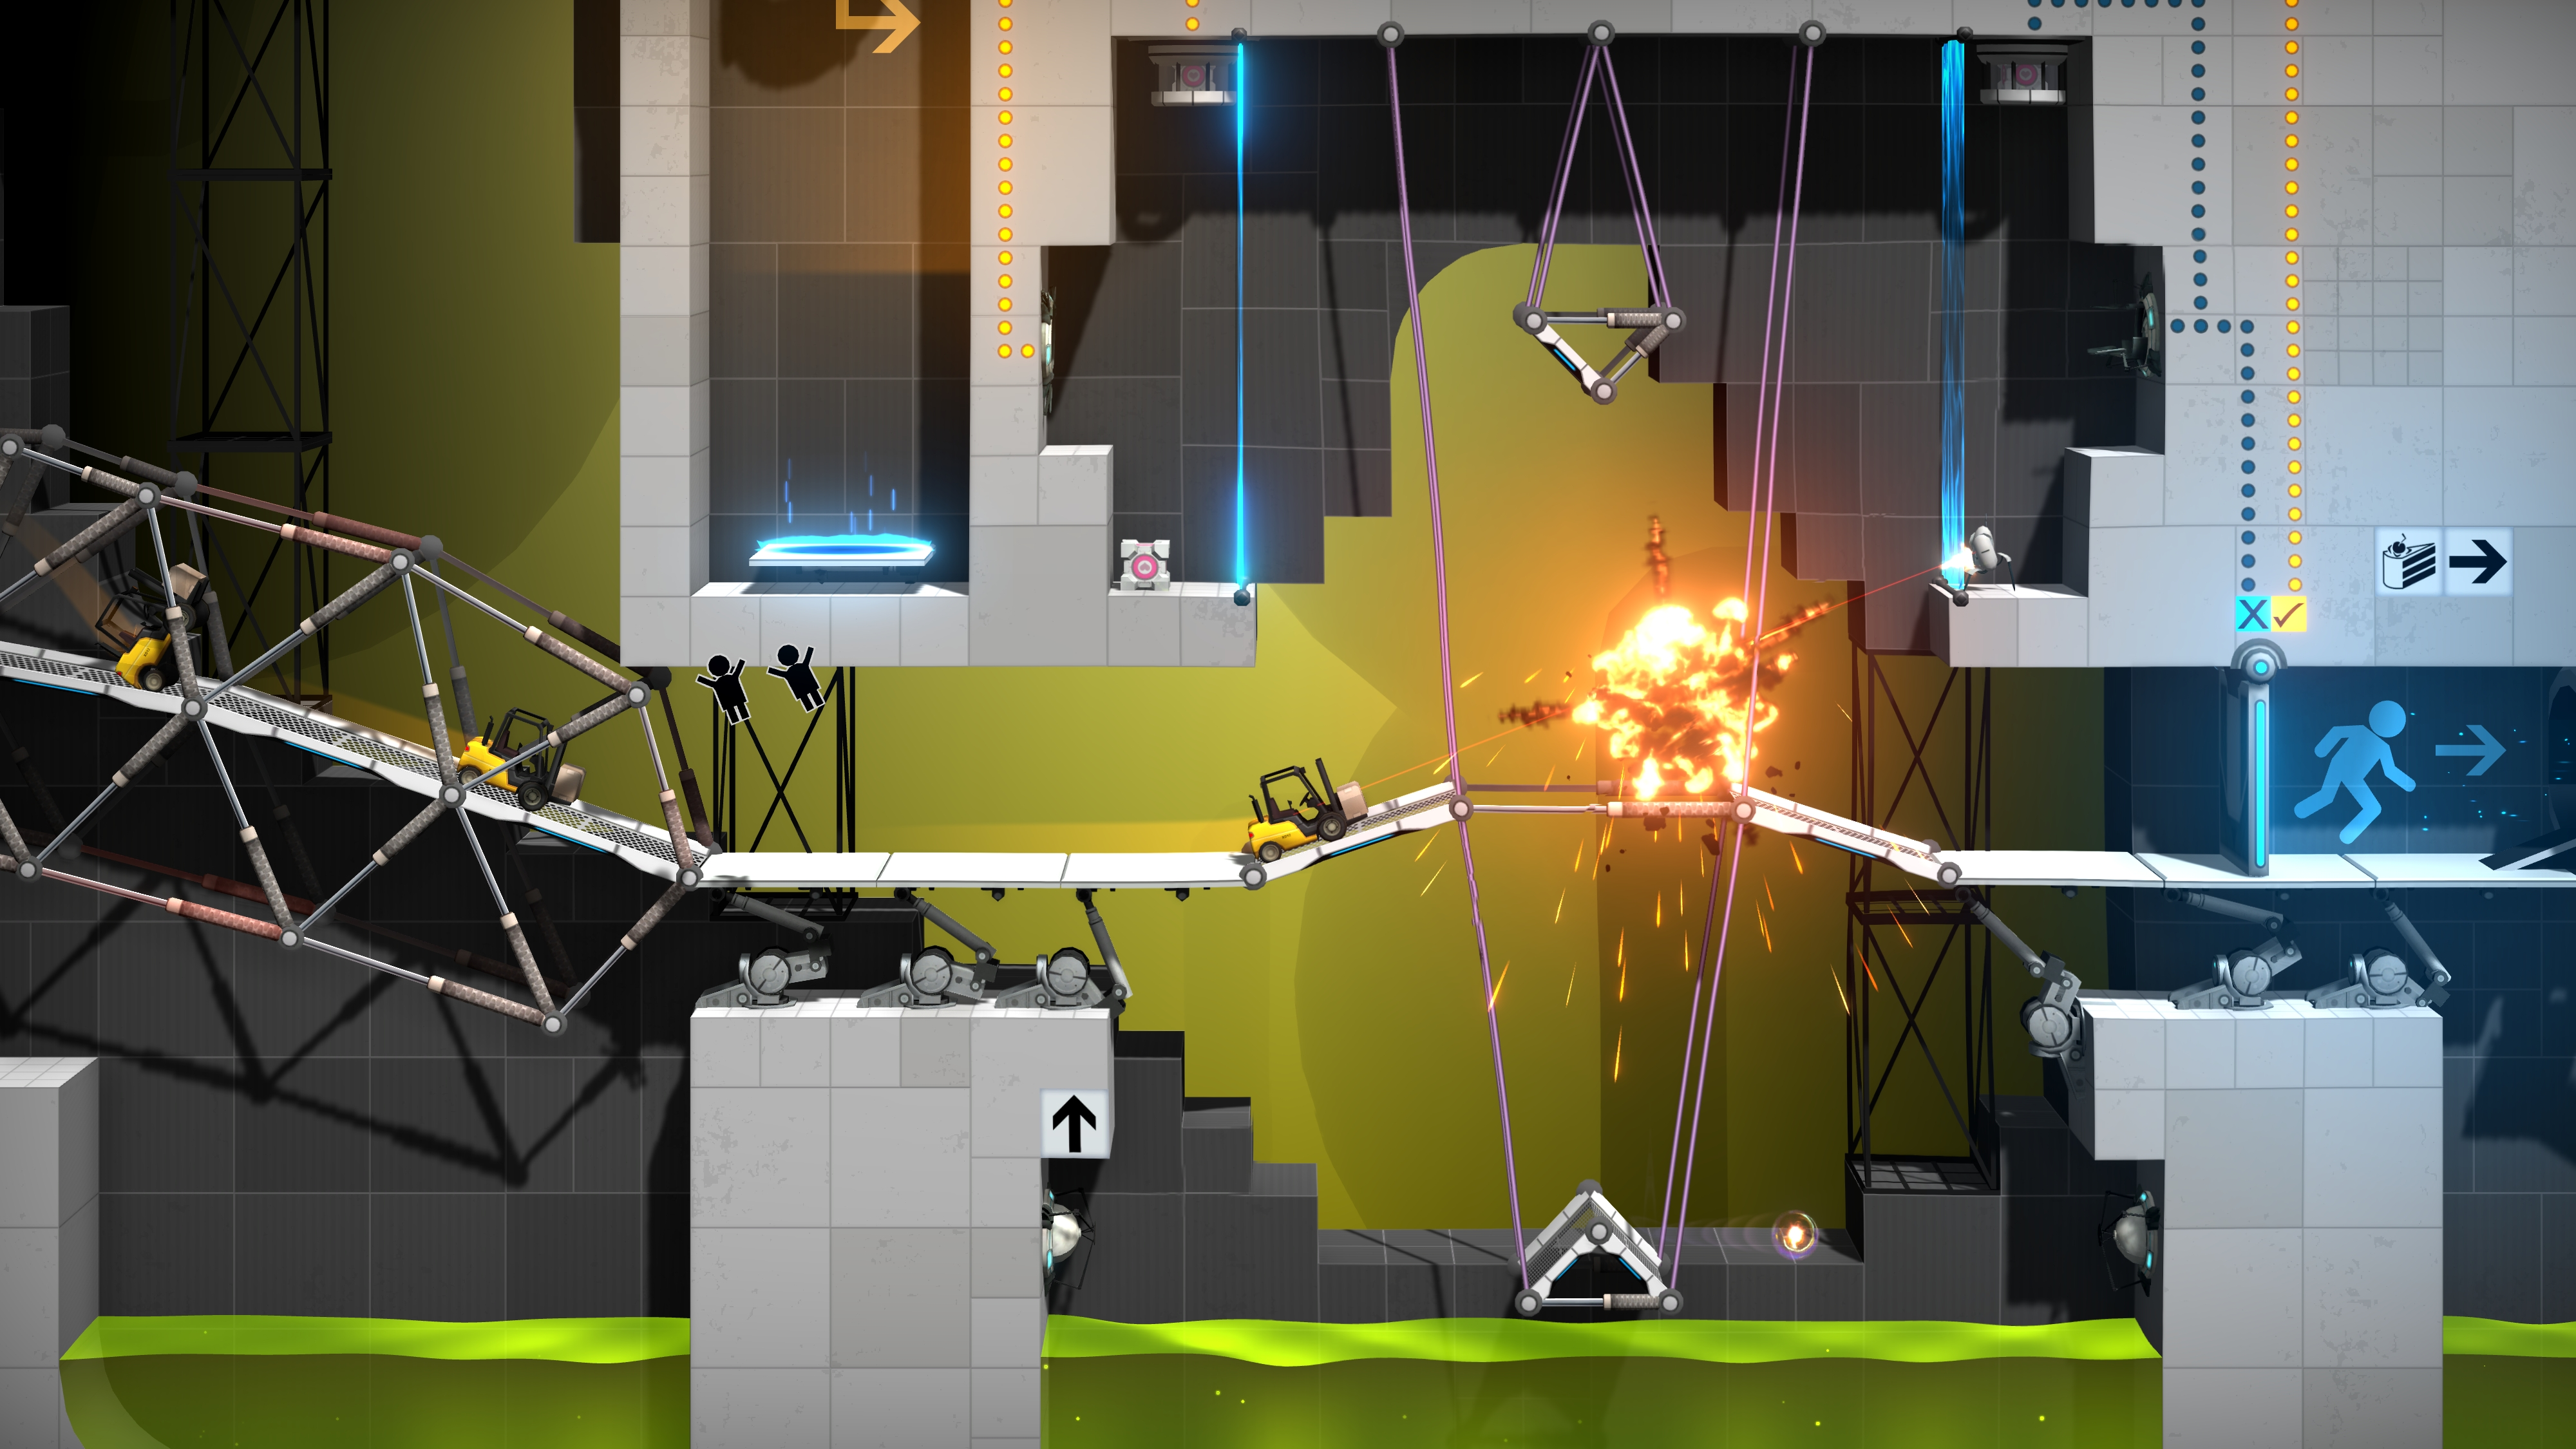 Bridge Constructor Portal brings GLaDOS to the Switch